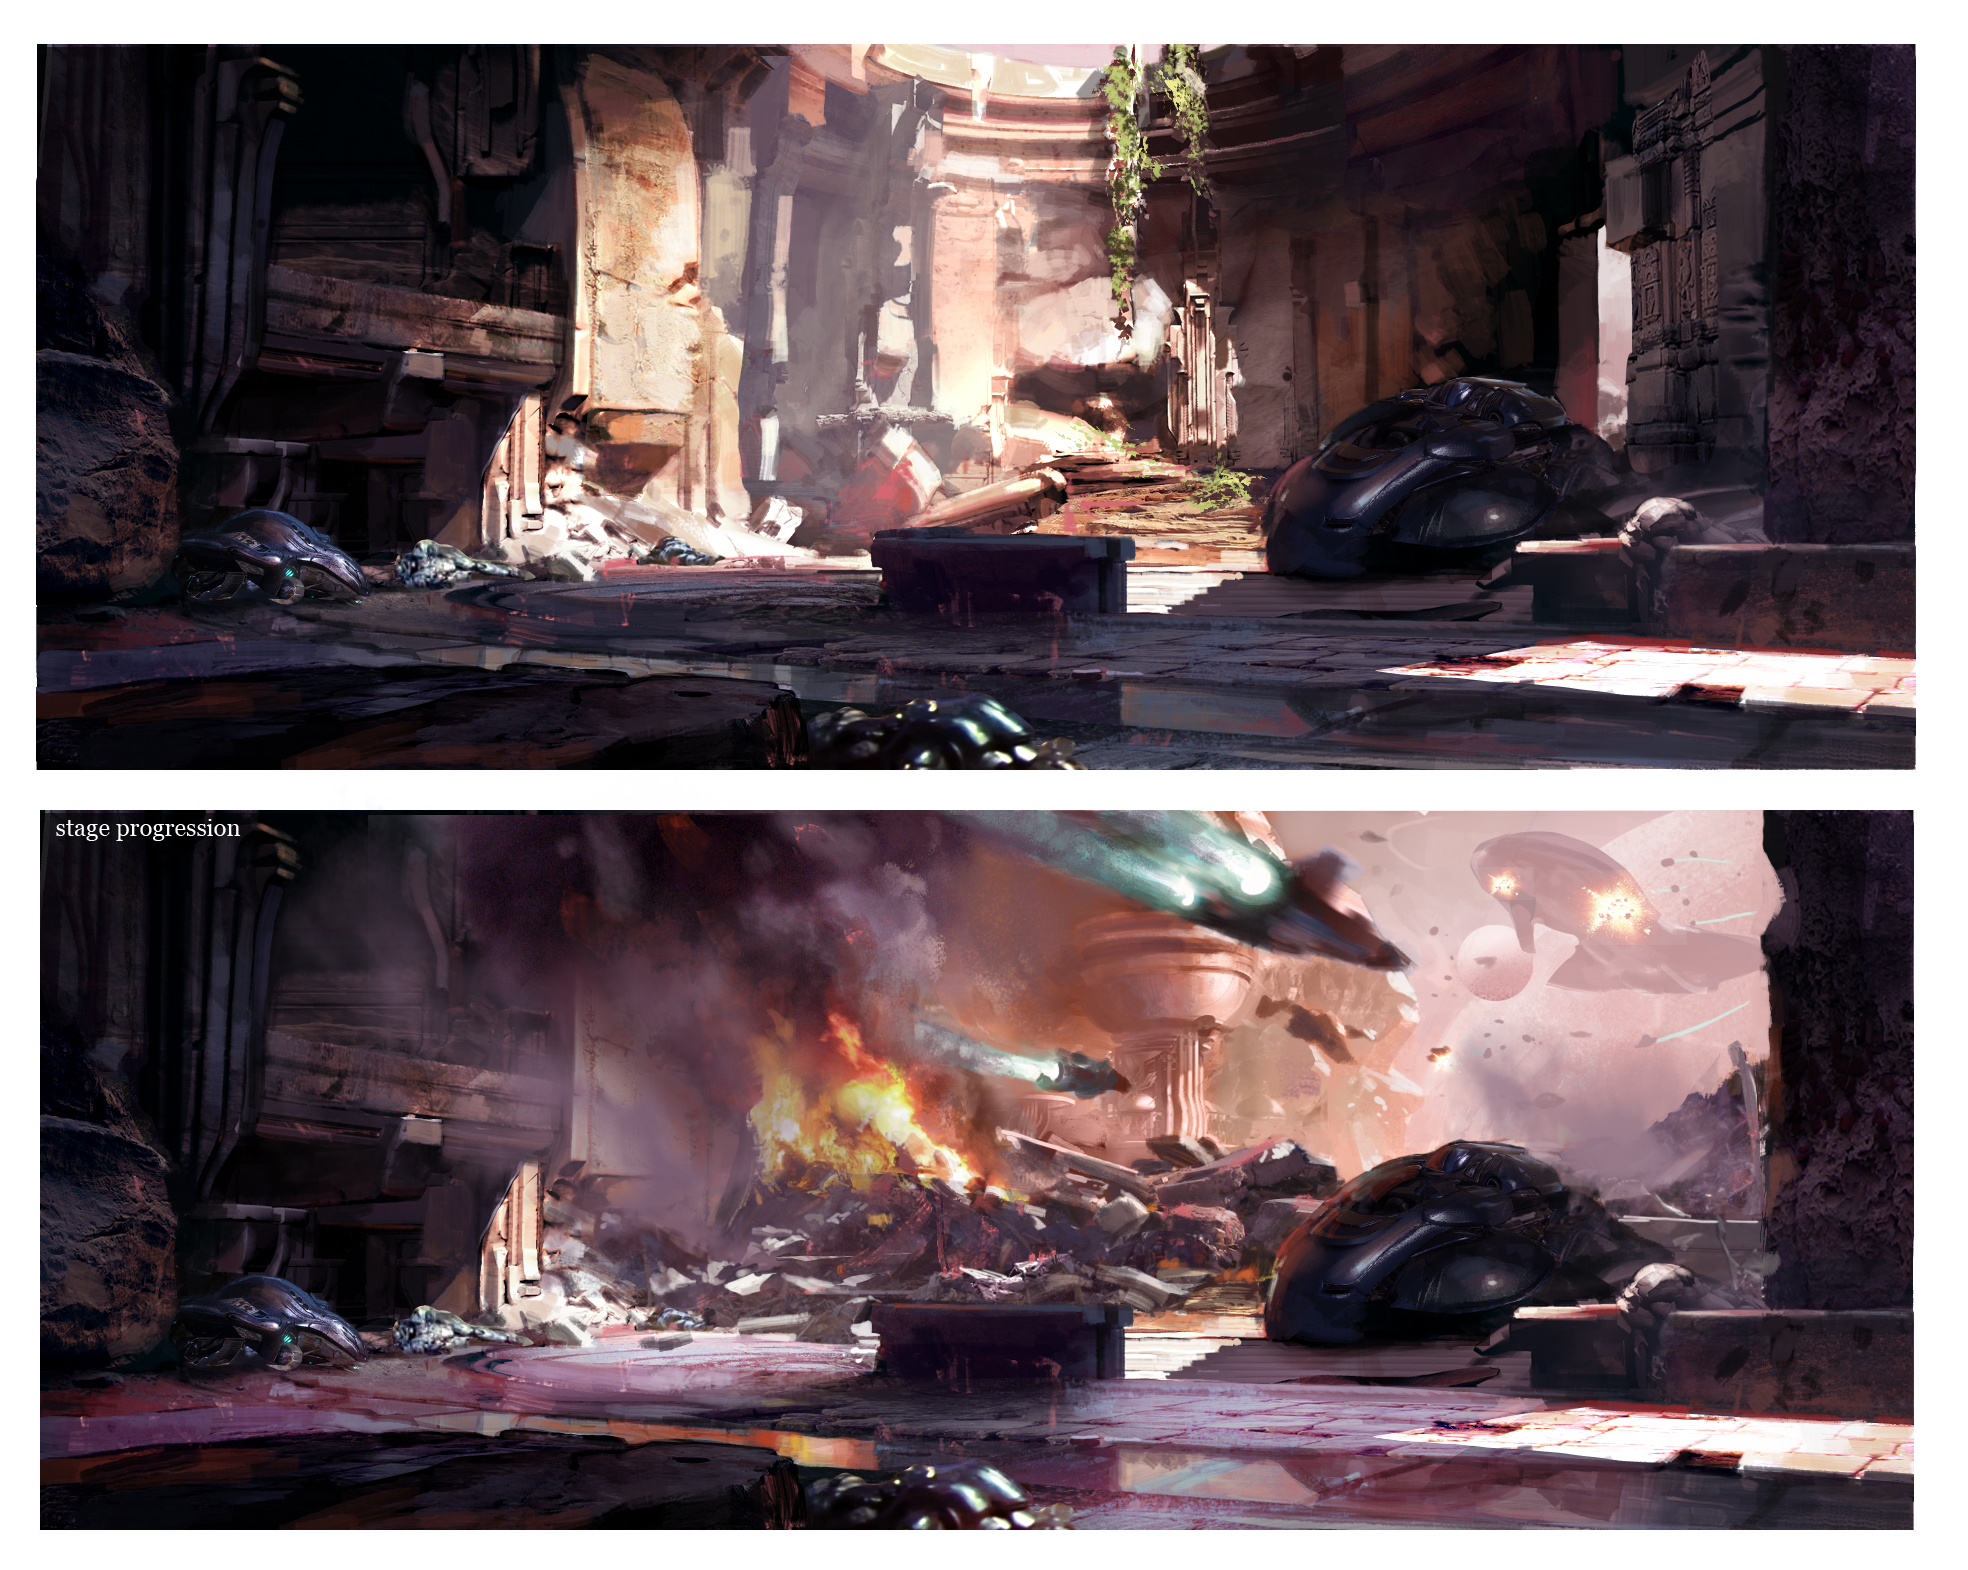 Killer Instinct Aribiter stage concept art, via 343 Industries